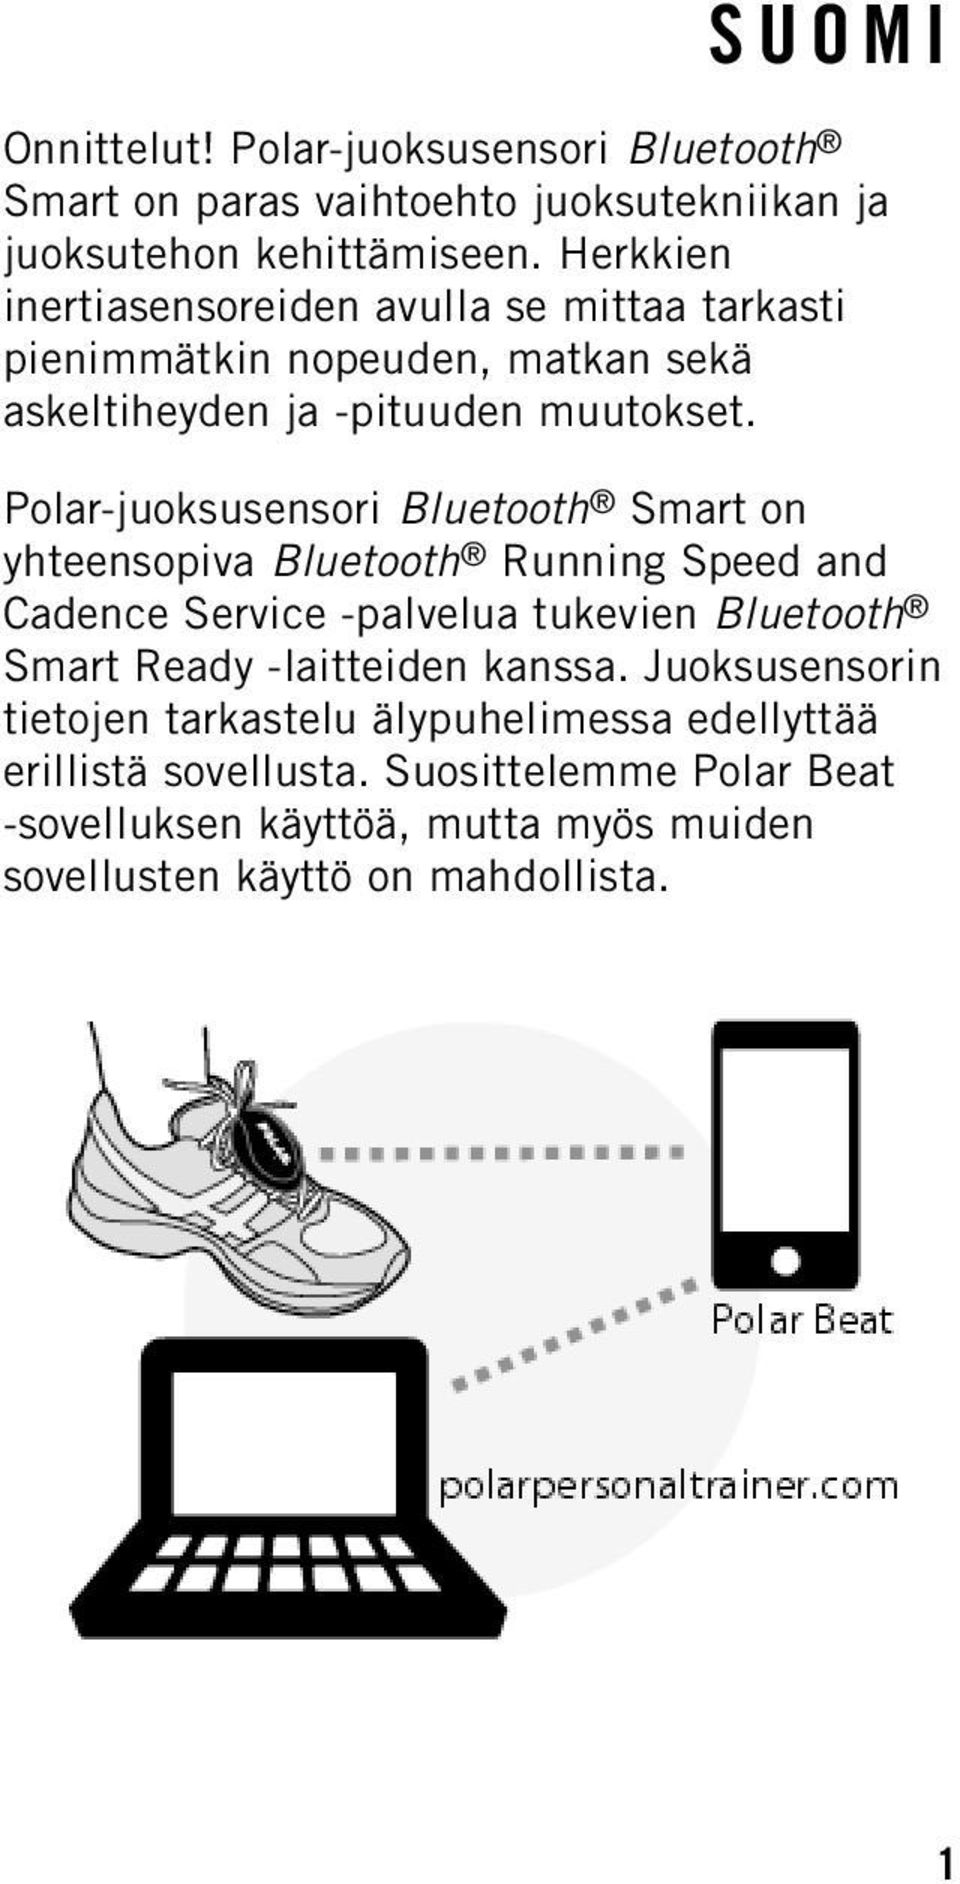 Polar-juoksusensori Bluetooth Smart on yhteensopiva Bluetooth Running Speed and Cadence Service -palvelua tukevien Bluetooth Smart Ready